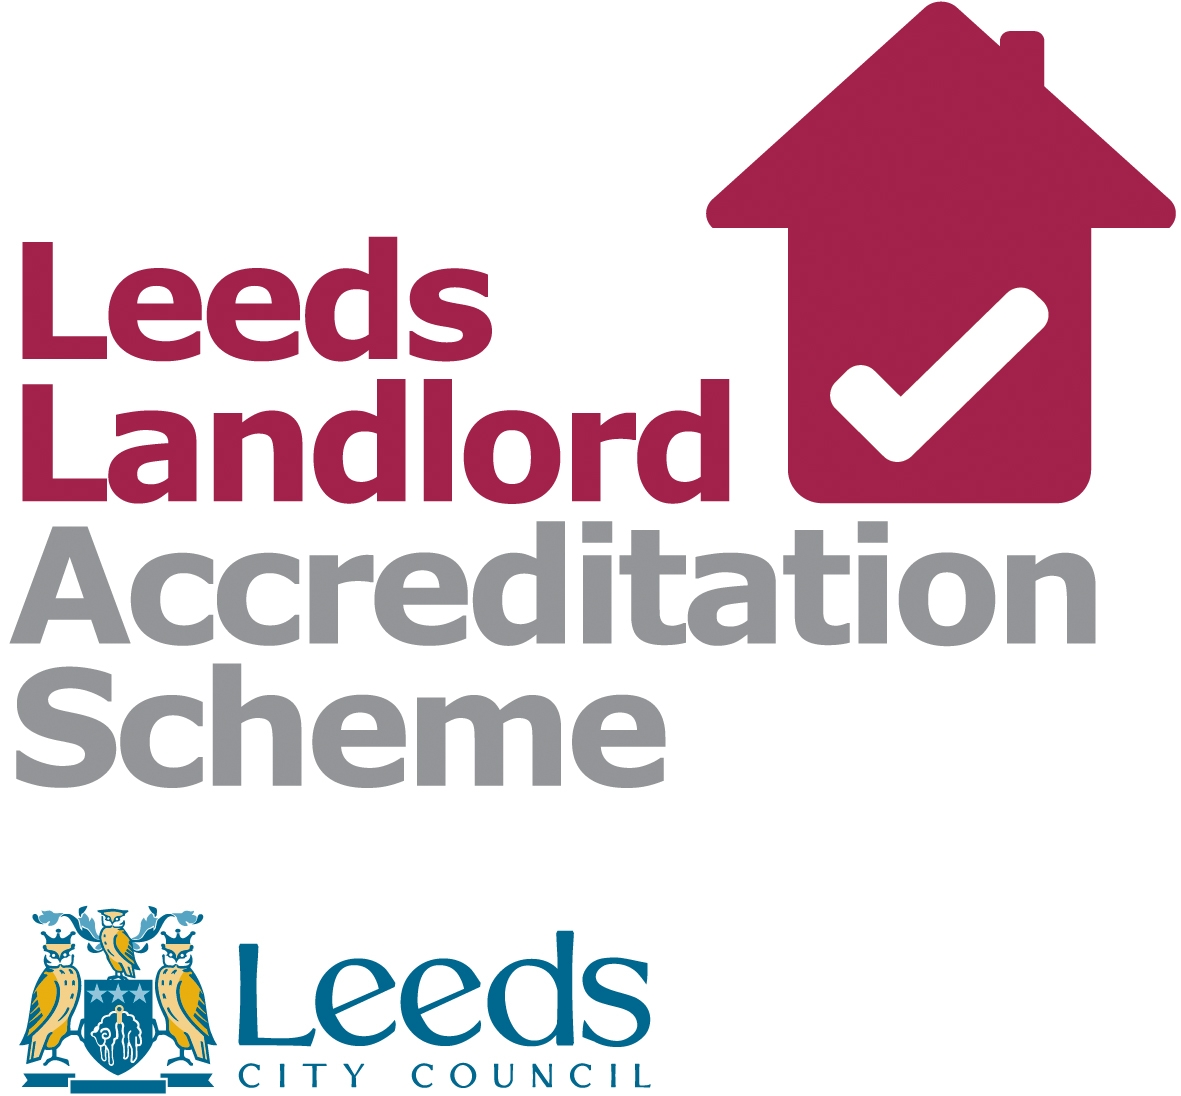 Leeds Landlords Accreditation Scheme logo